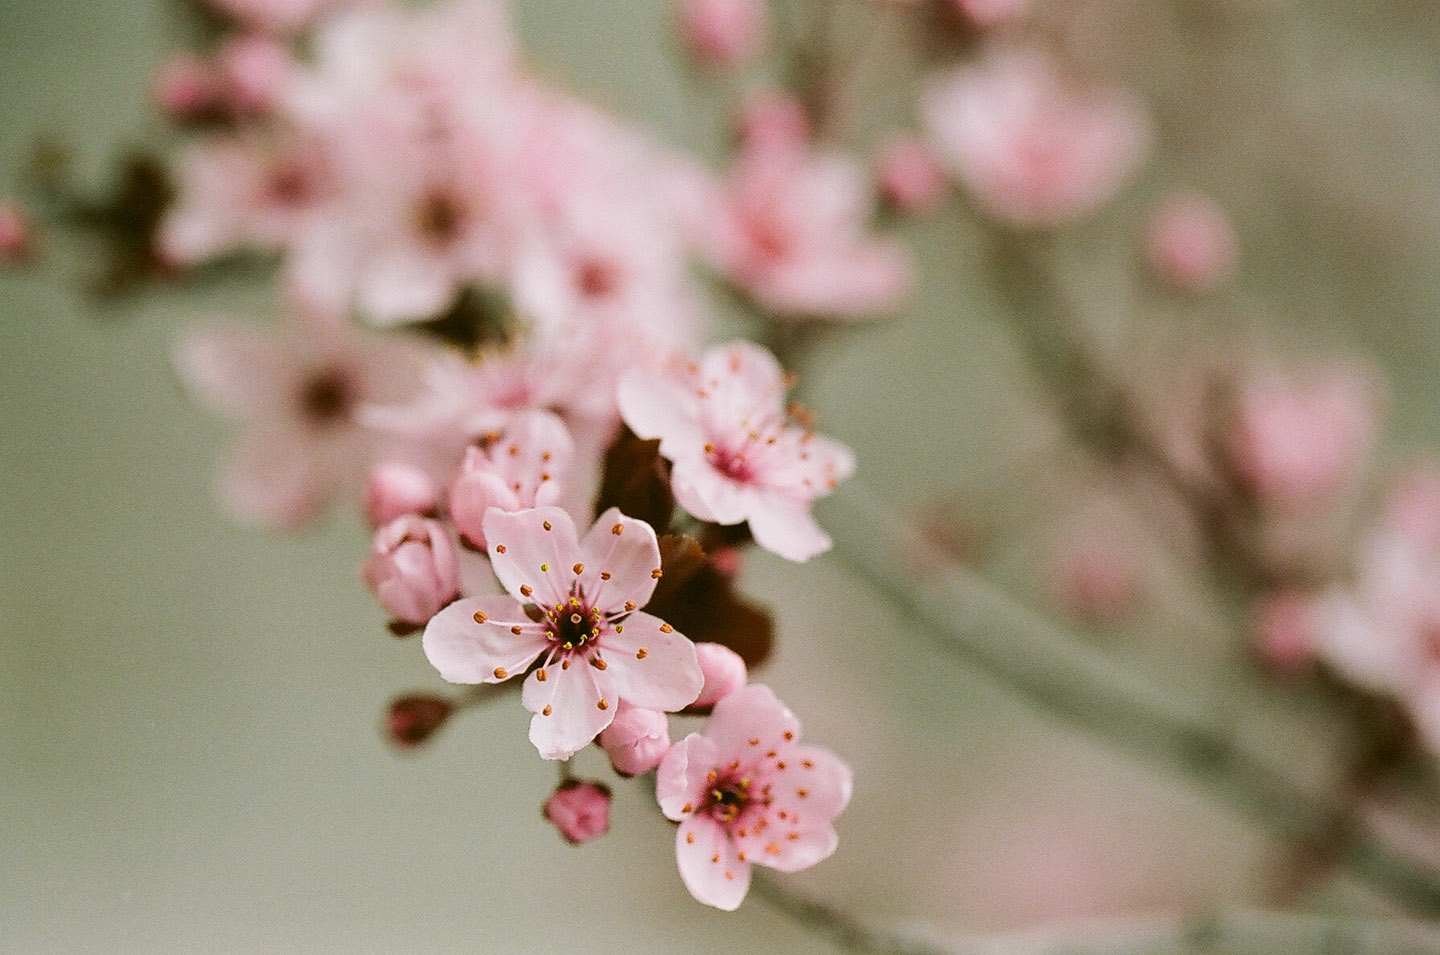 Spring blossoms on 35mm film